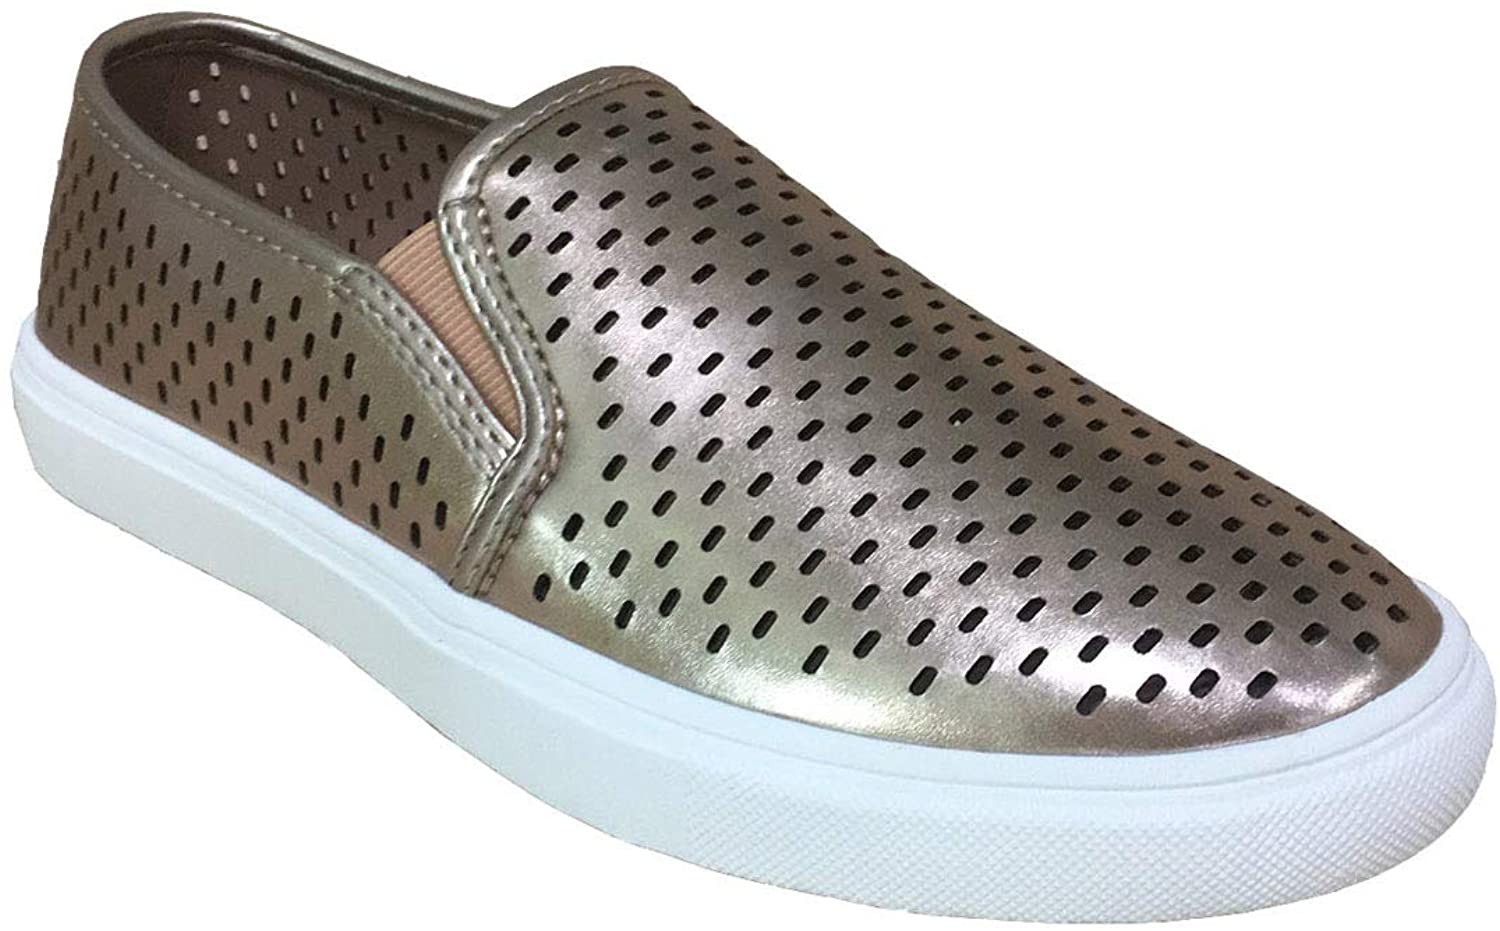 Time & Tru Women's Perforated Comfort Casual Slip On Shoes